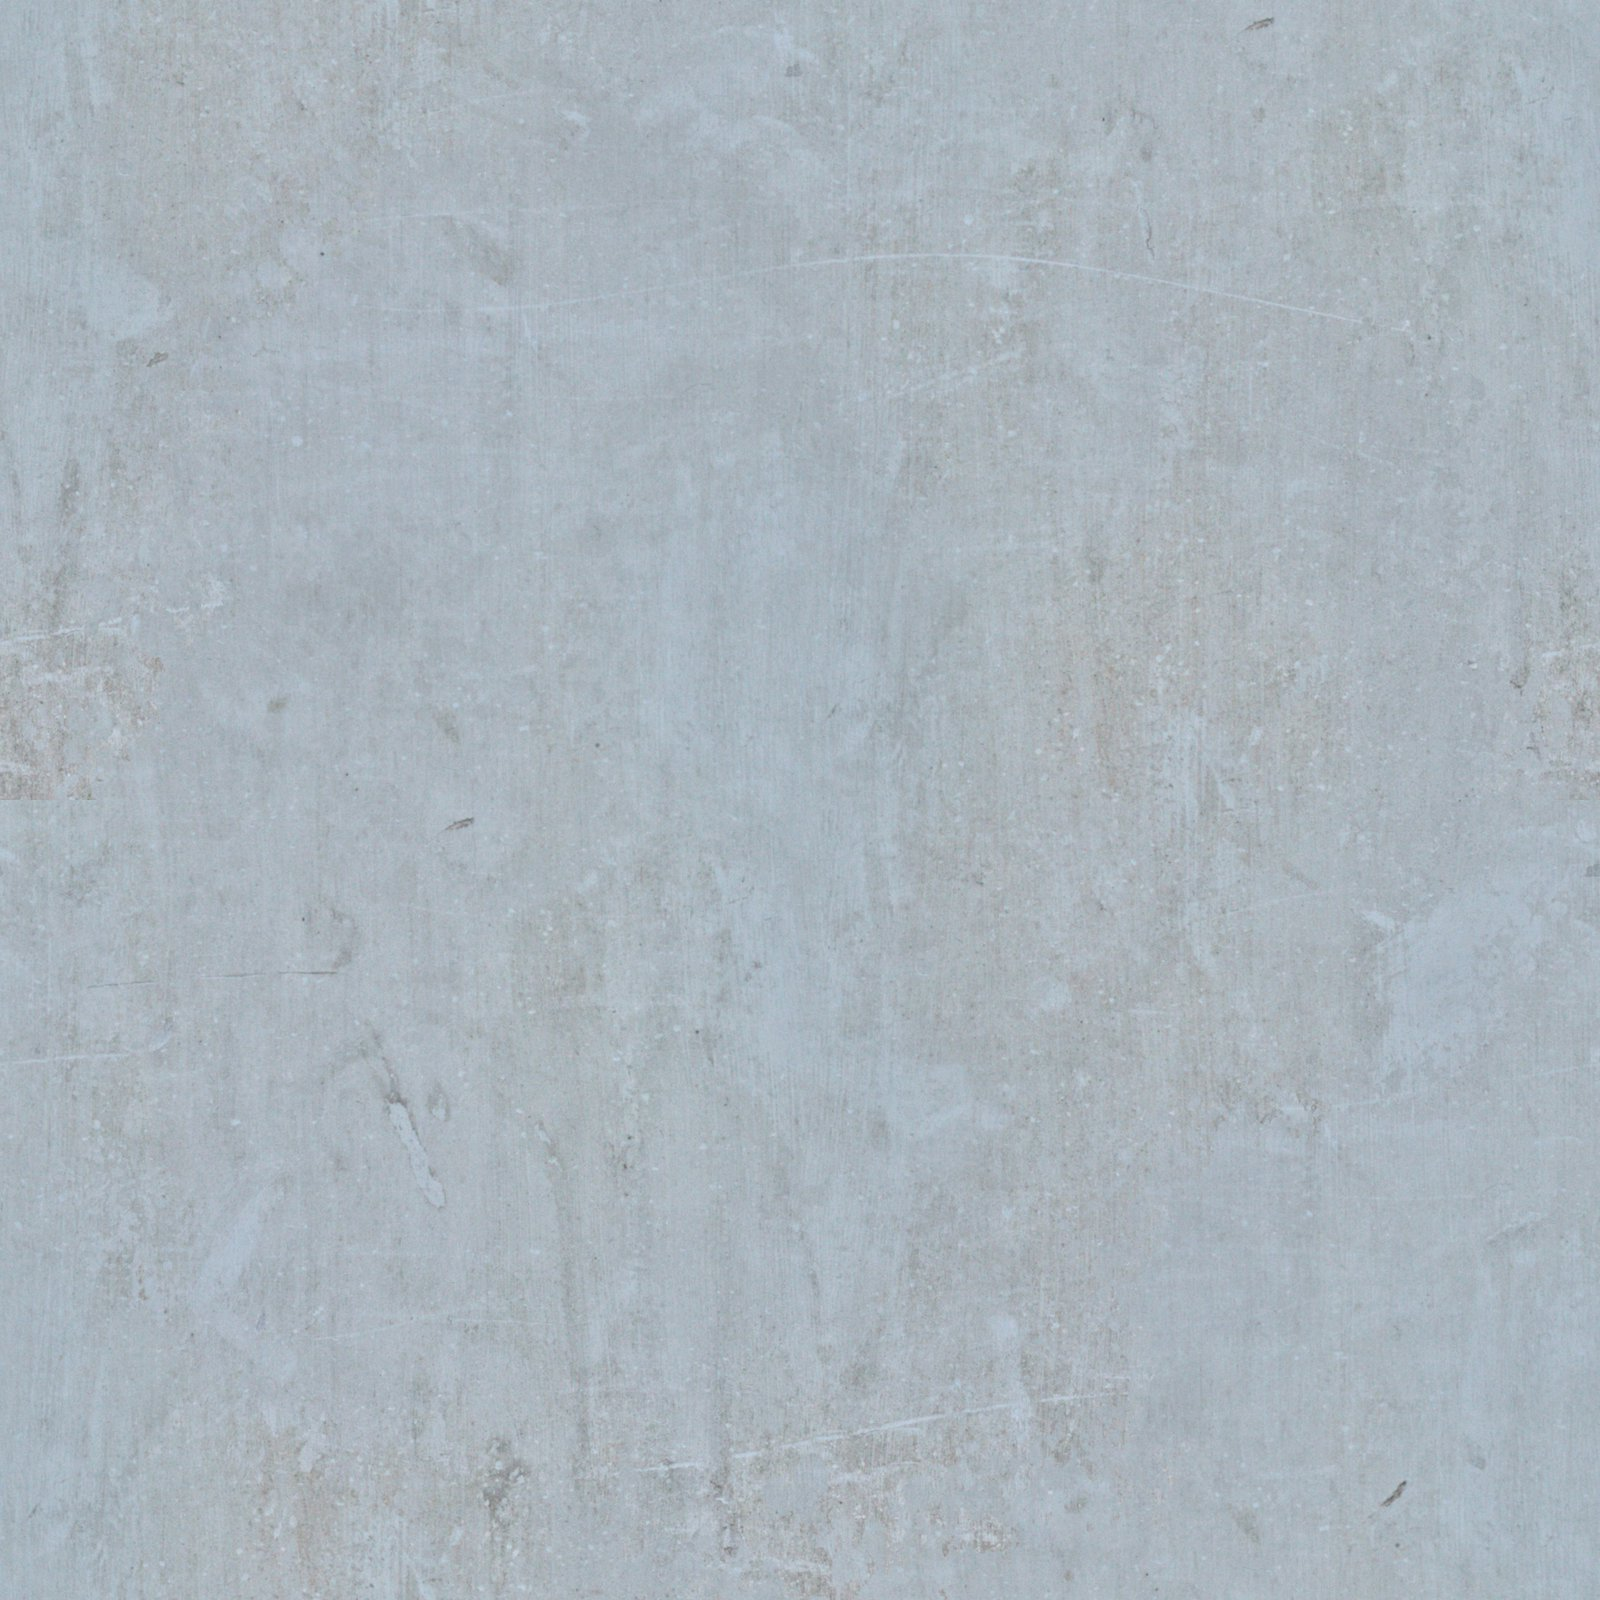 Concrete wall smooth dirty seamless texture 2048x2 by hhh316 on ...